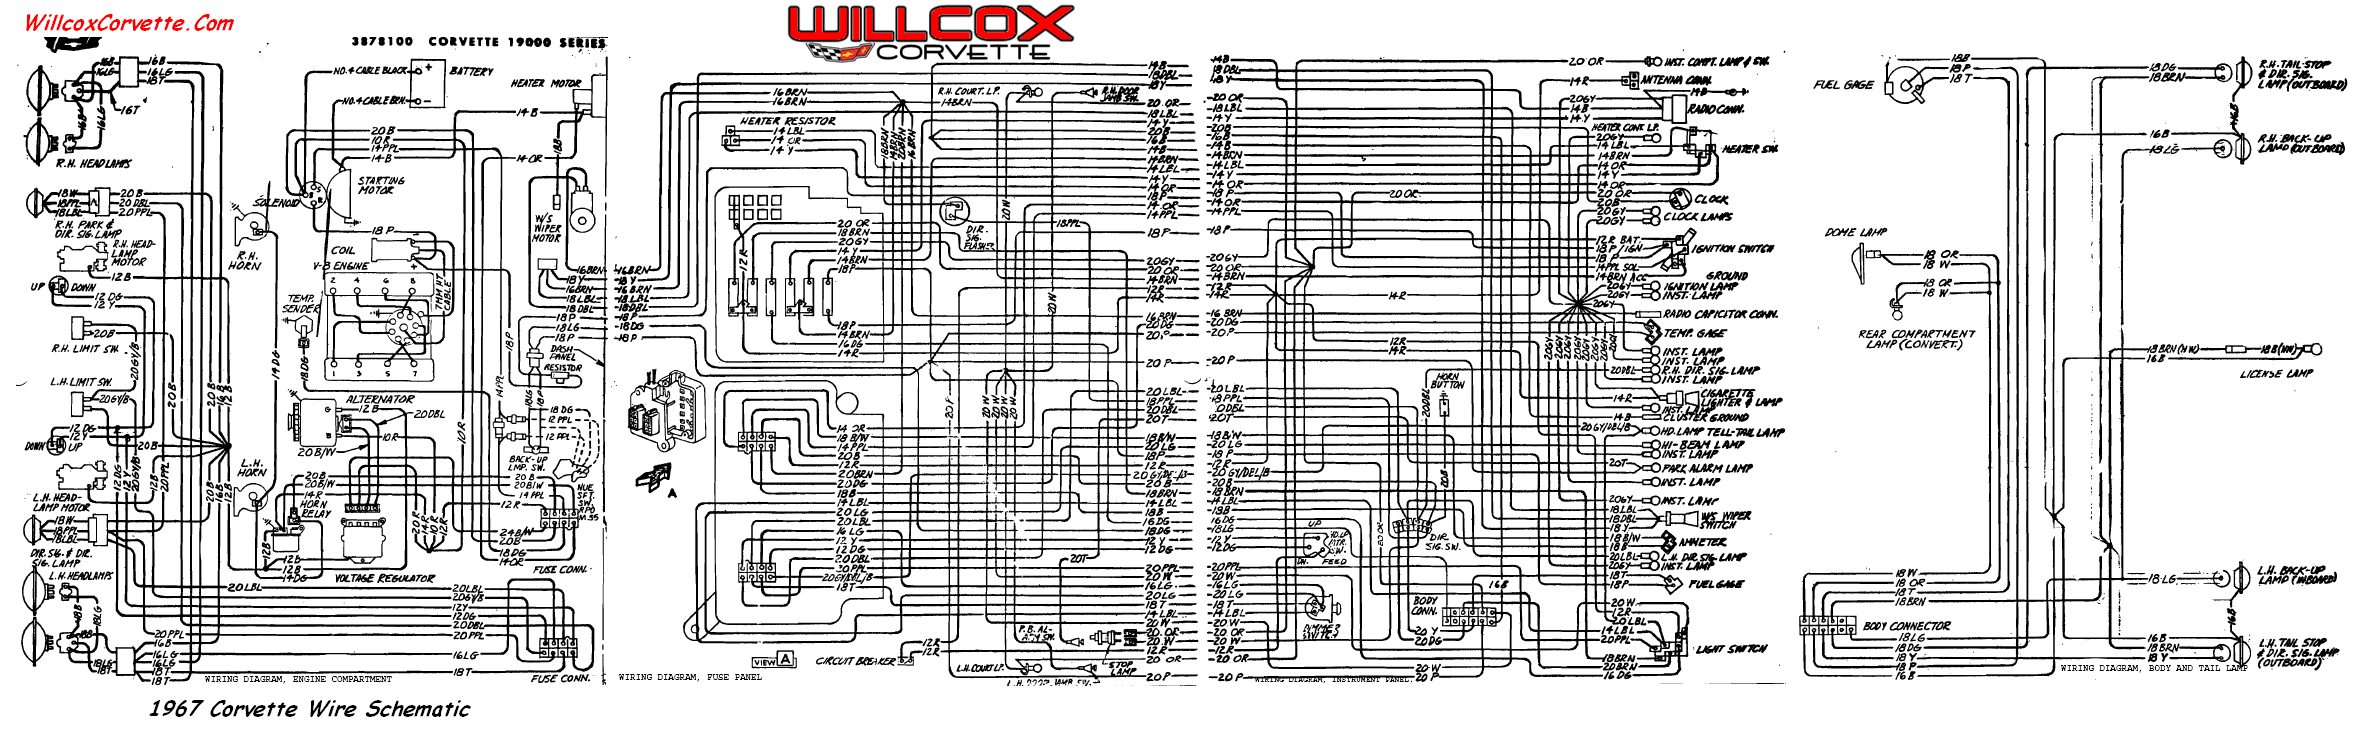 67 wire schematic for tracing wires 1967 corvette wiring diagram (tracer schematic) willcox corvette 1990 corvette wiring diagram at gsmx.co